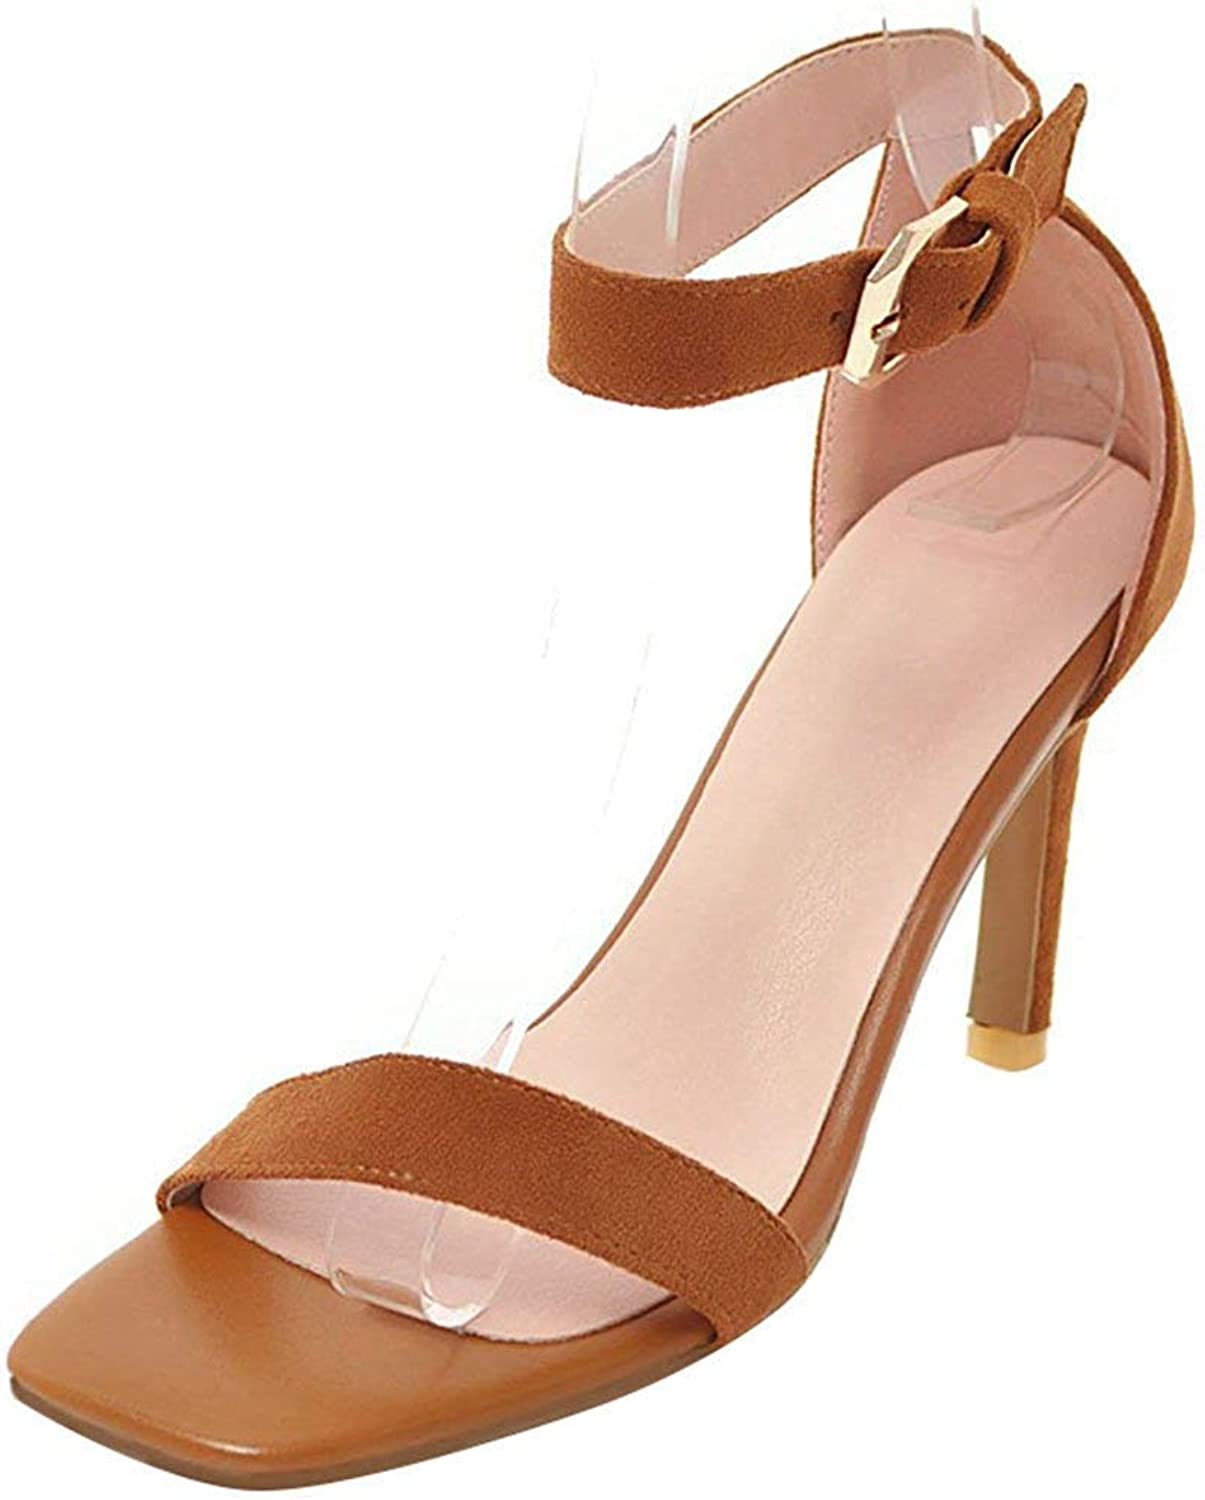 Ghssheh Women's Sexy Buckle Ankle Strap Sandals Faux Suede Open Toe Stiletto High Heels Work shoes Nude 4 M US